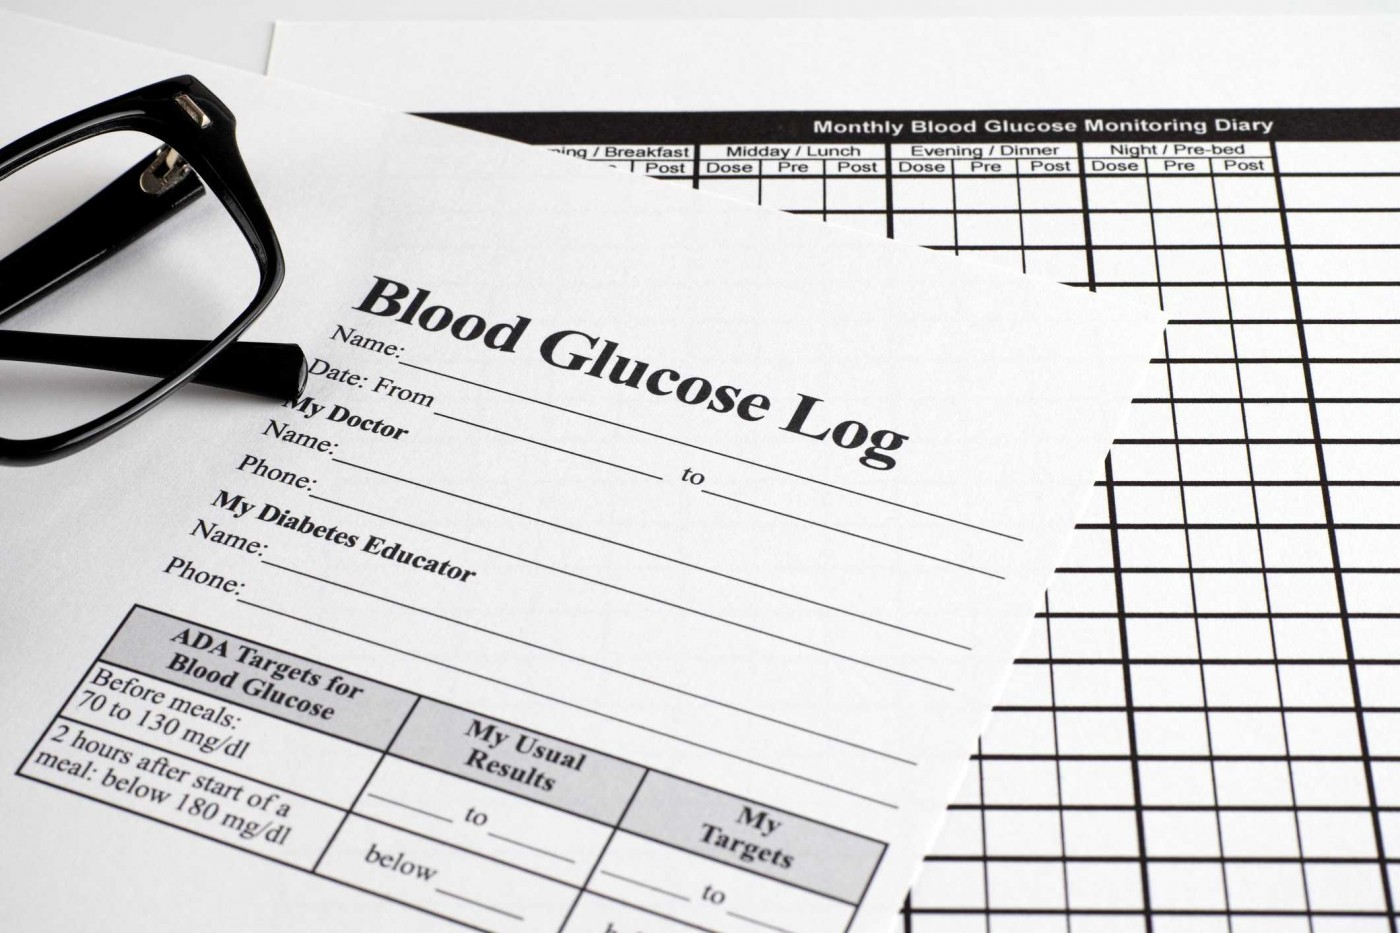 008 Dreaded Free Blood Sugar Log Template Pdf Design 1400